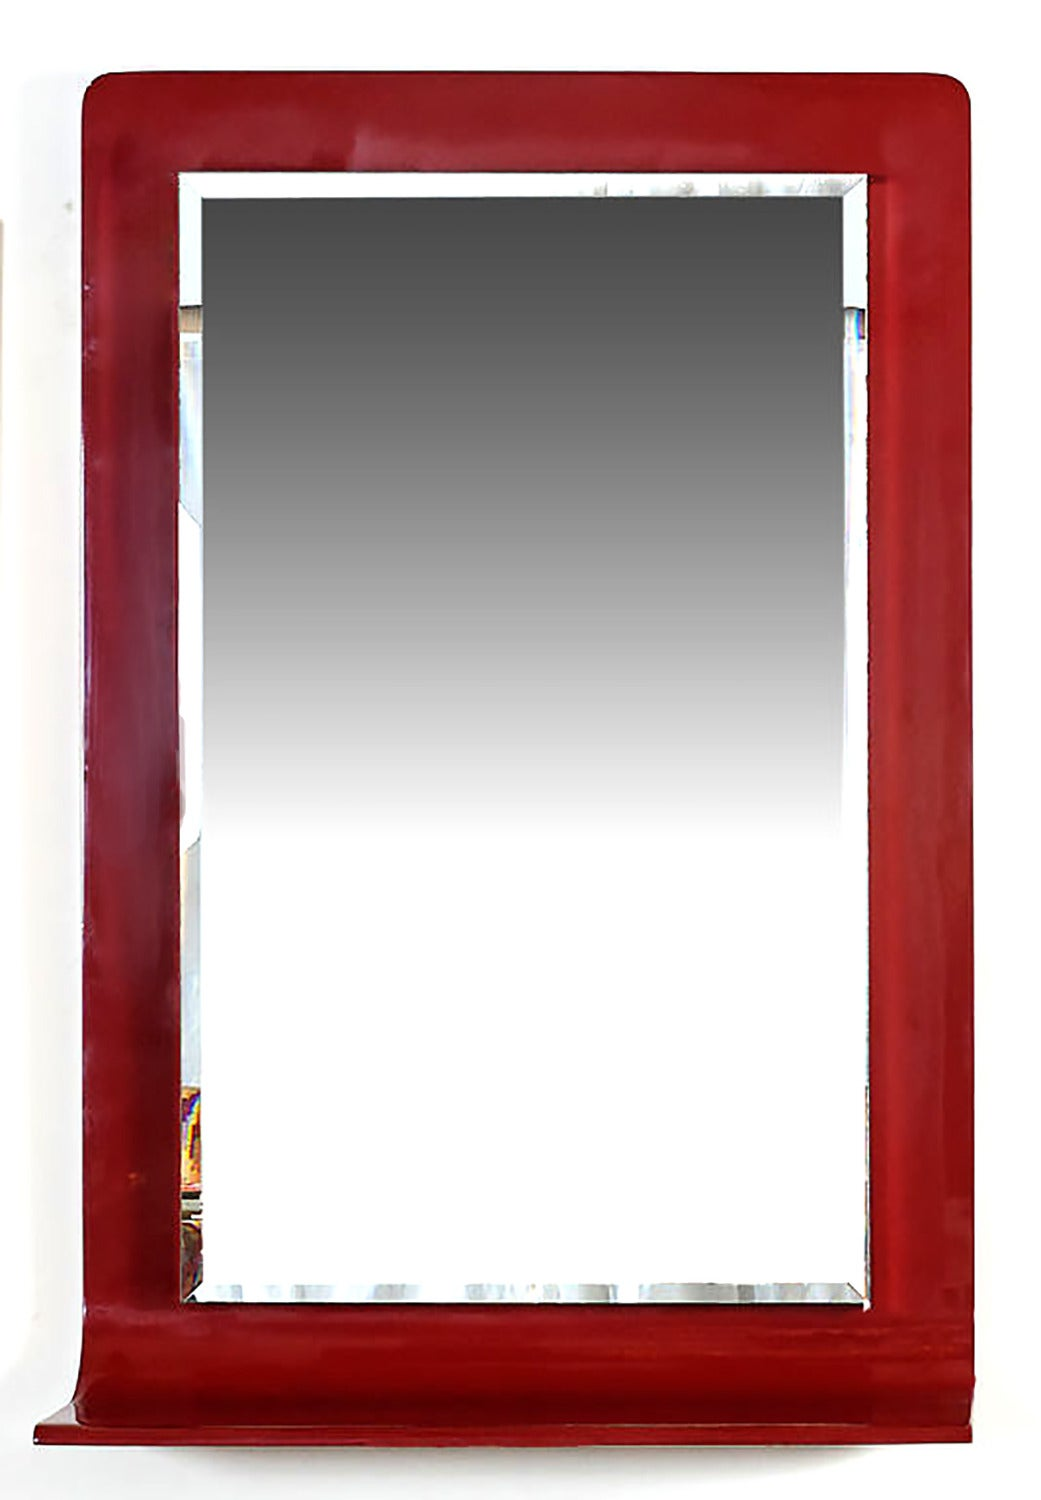 Stunning rectangular lipstick red lacquer mirror by New York maker, Gampel-Stoll. Bottom of wooden frame curves from vertical to horizontal, creating a console shelf. Bevelled mirror, on projecting backing plate with mirrored sides, is float mounted